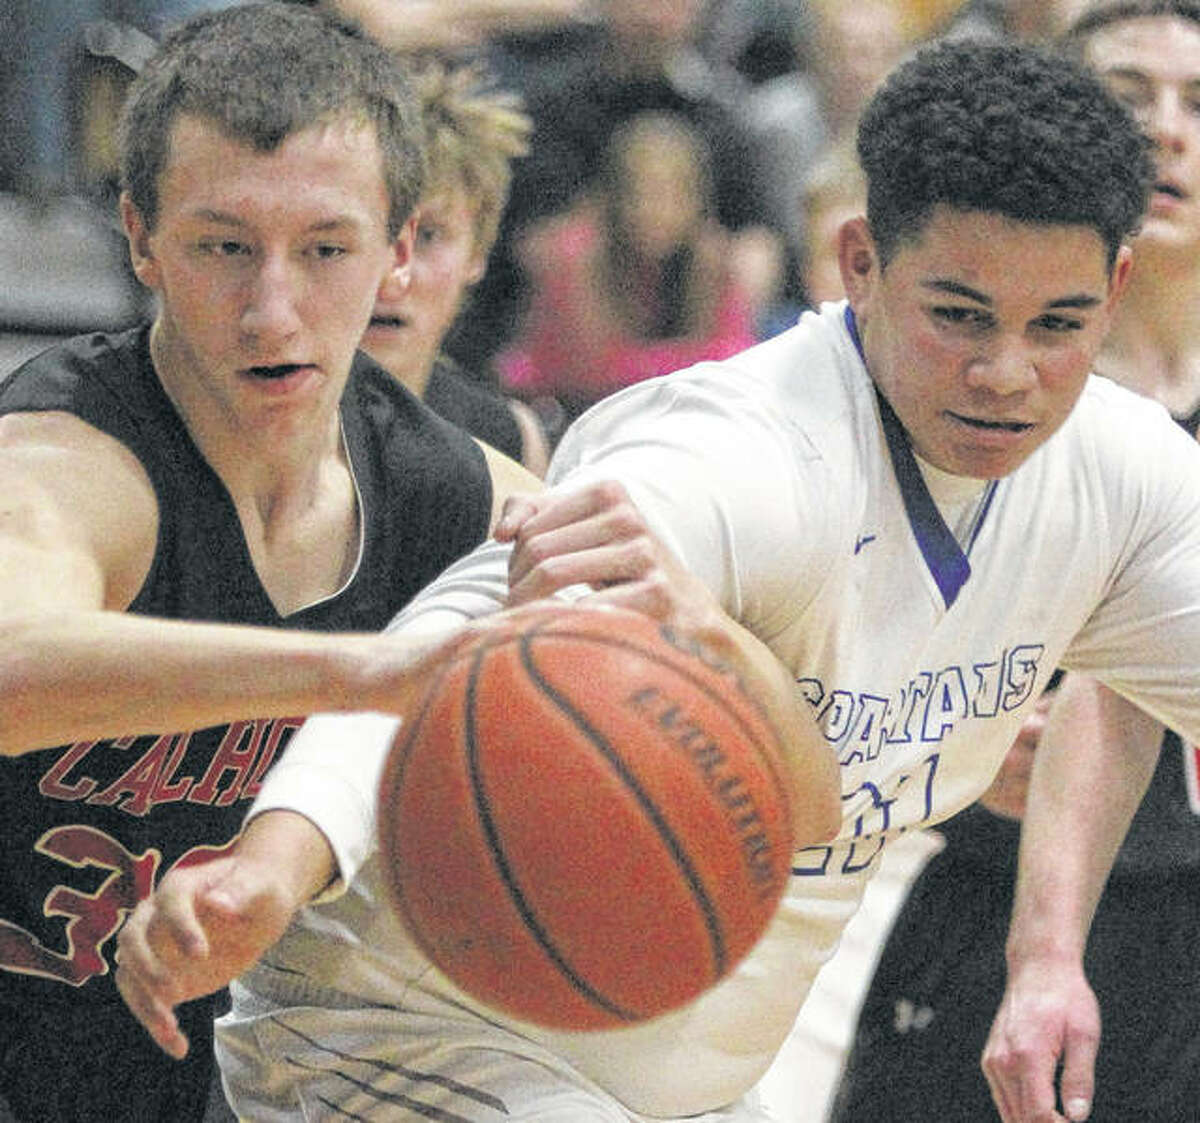 North Greene's Zion Thomas (right) and Calhoun's Corey Nelson go after a rebound during Saturday night's championship at the Beardstown Tournament. North Greene won 52-49.